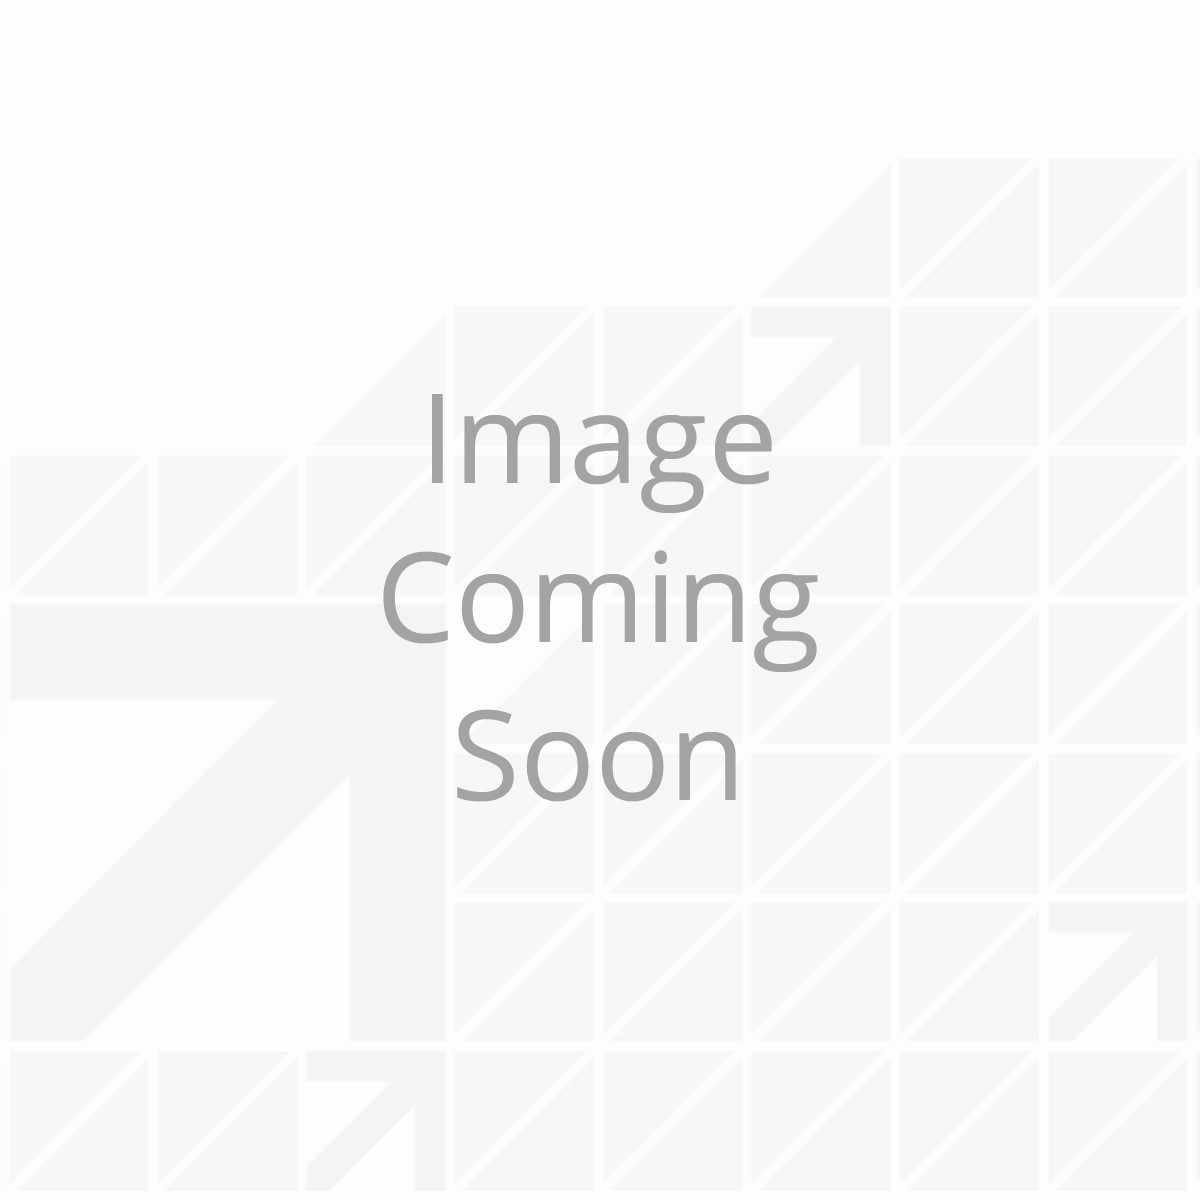 Range Hood, 12V, Vented with Charcoal Filter, Black Body/Stainless Faceplate